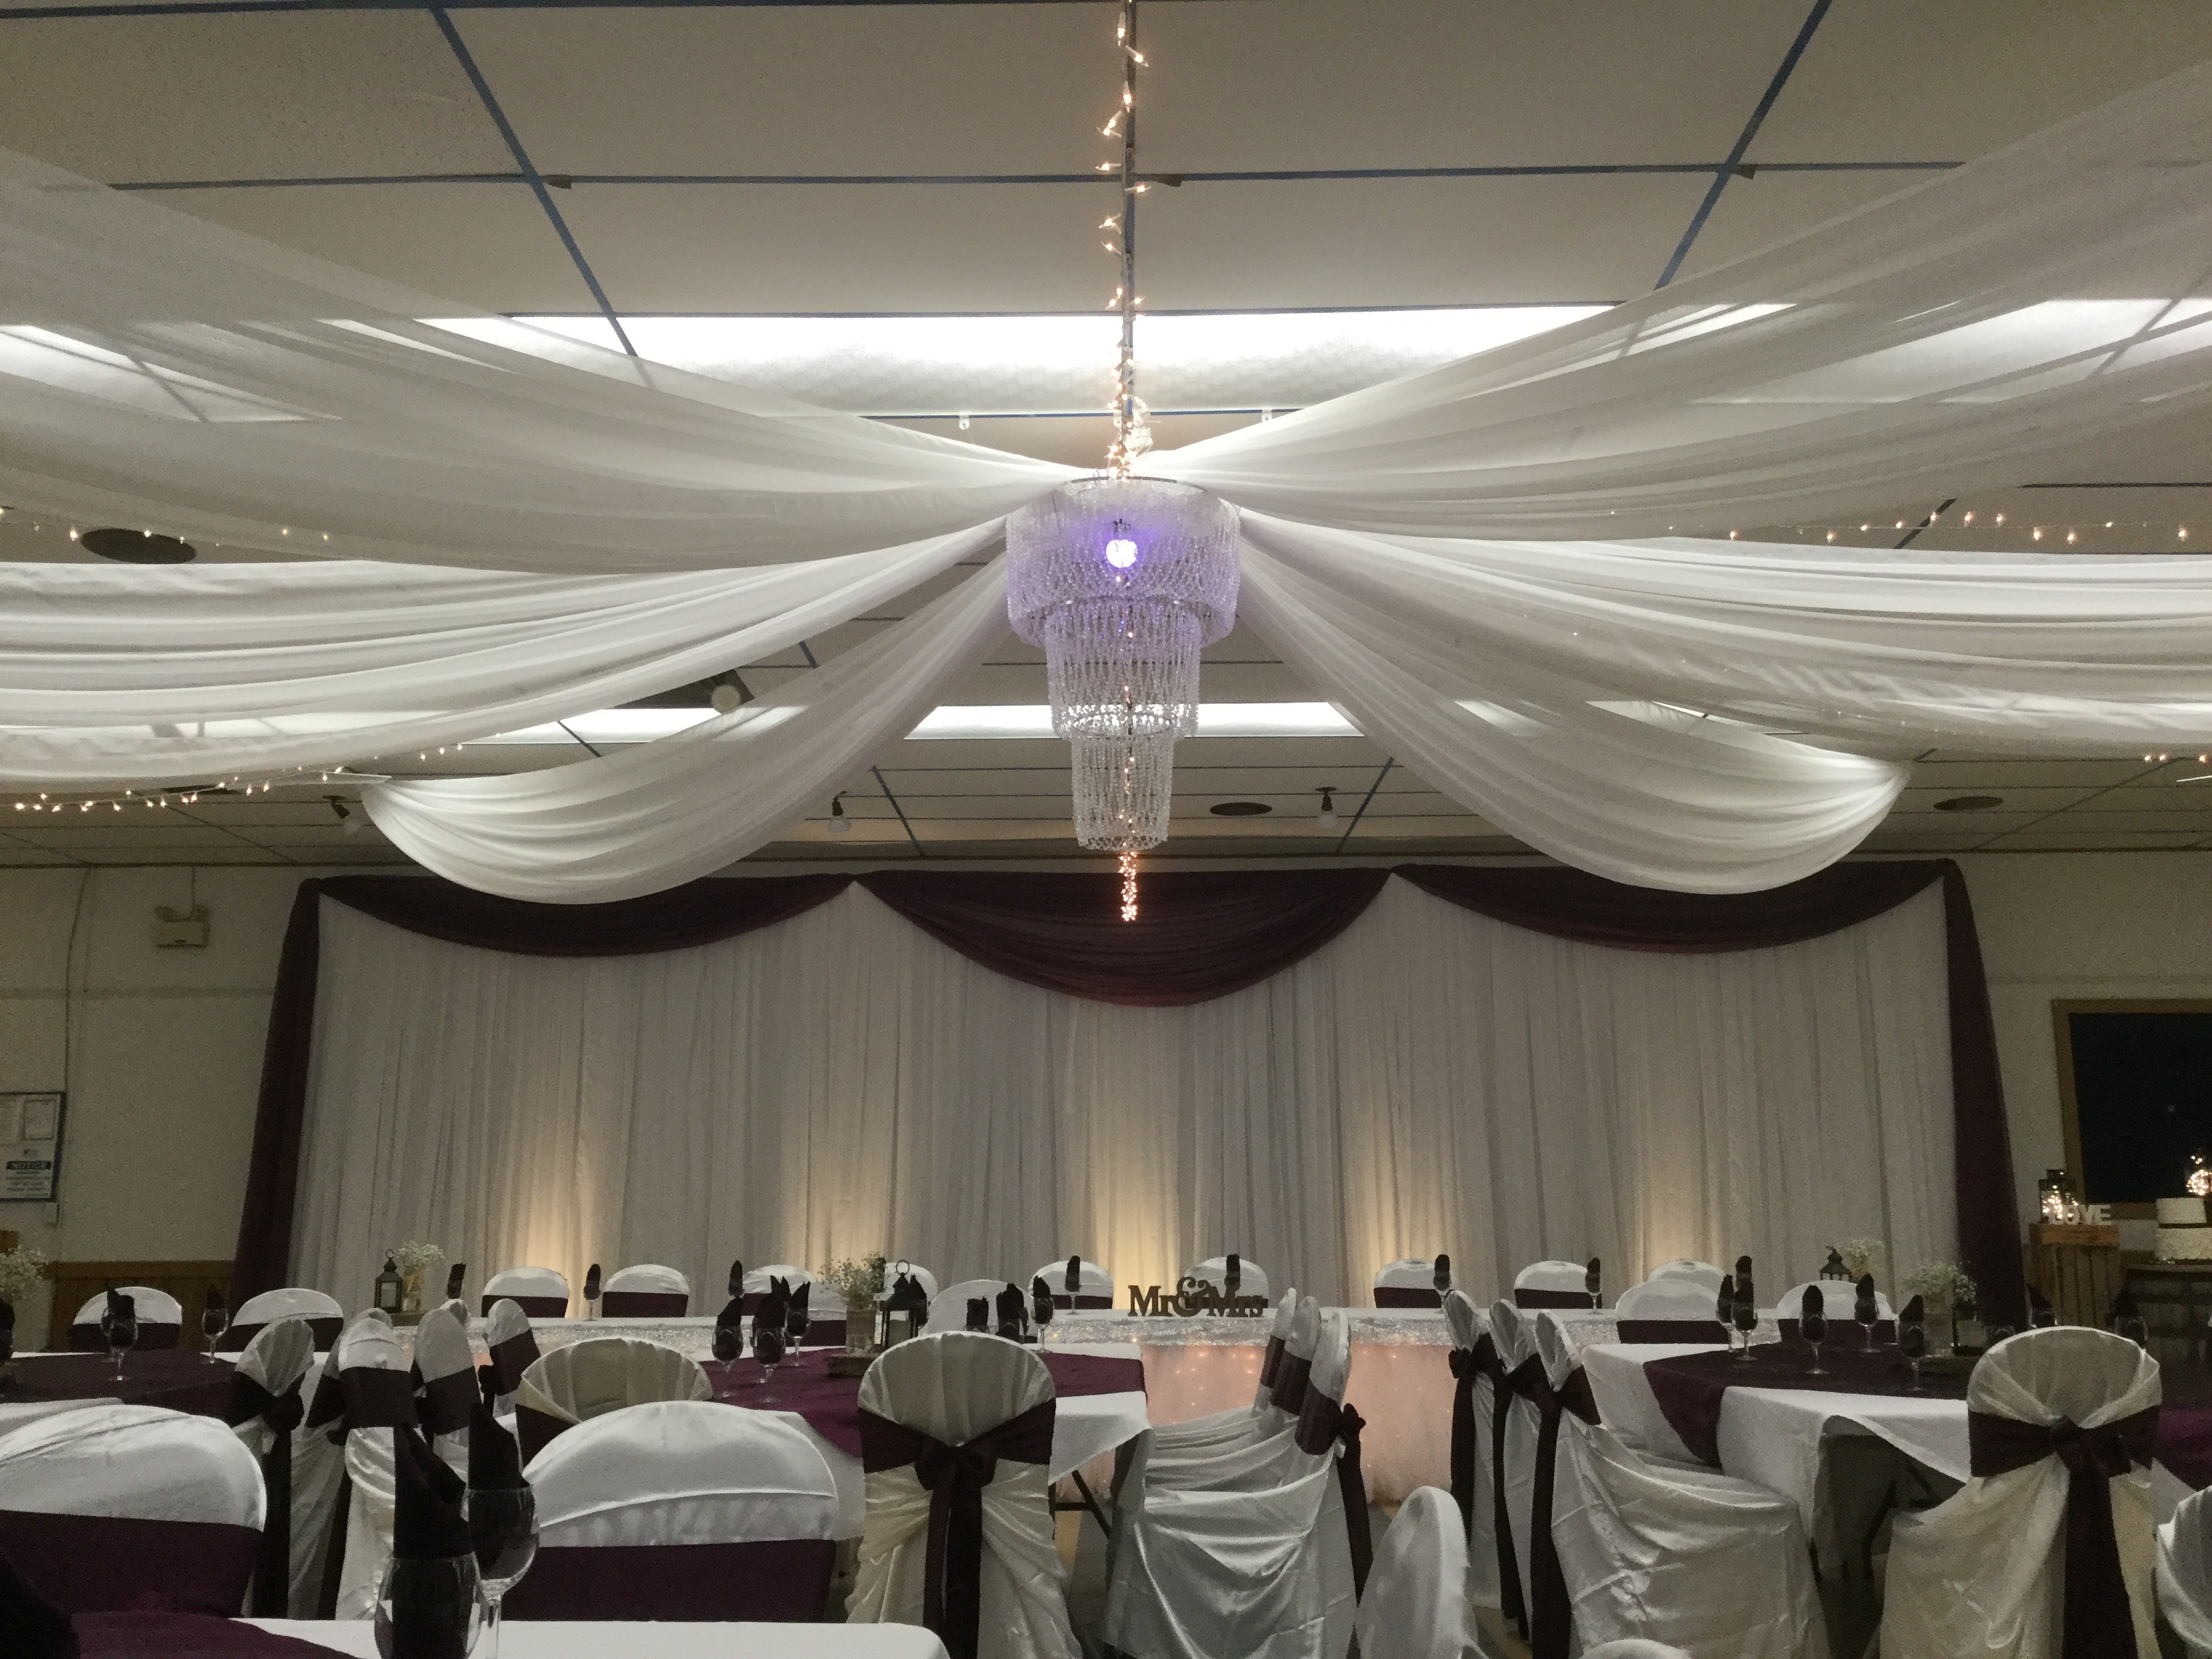 Ceiling Canopy & Backdrop